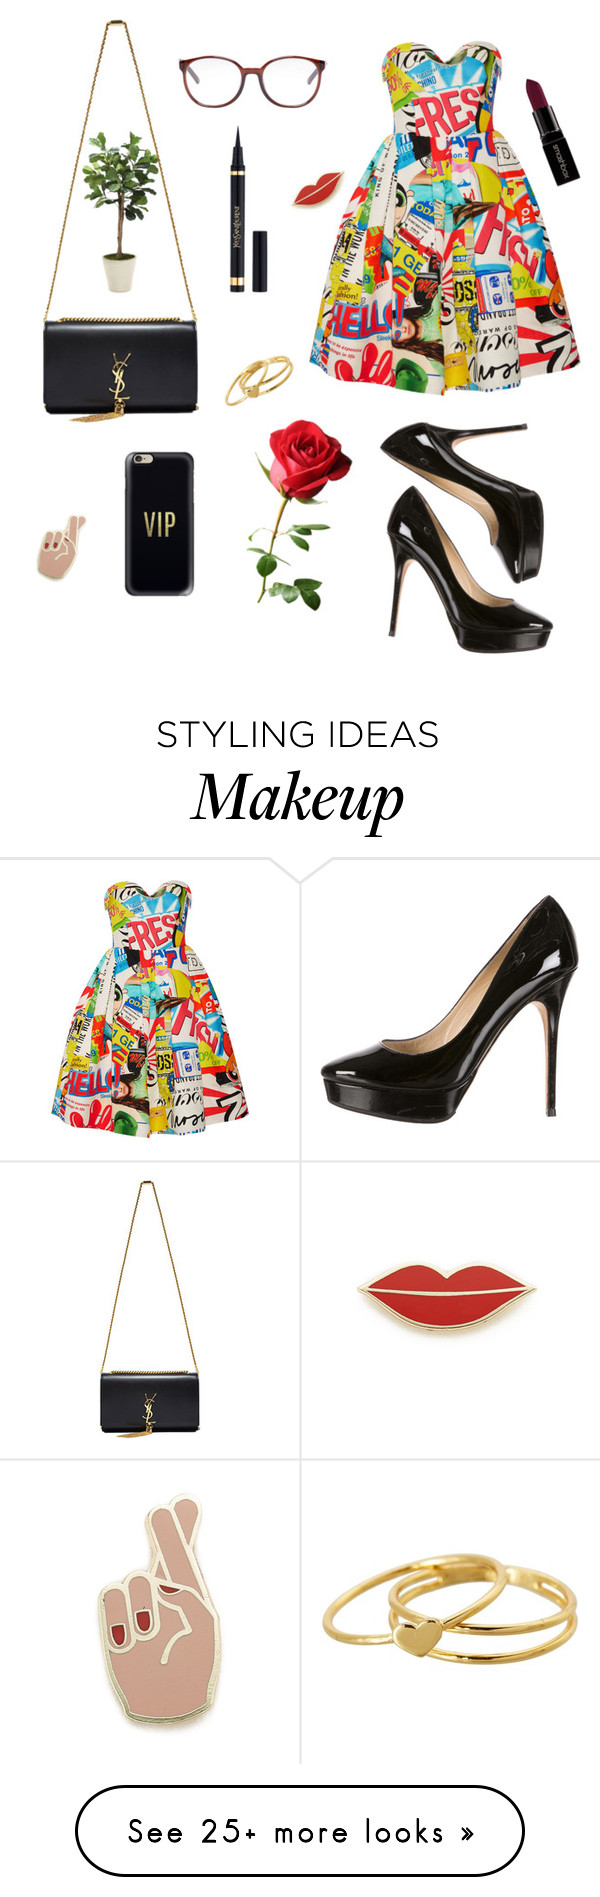 """""""Sin título #4"""" by natalivalderrama on Polyvore featuring Chloé, Jimmy Choo, Casetify, Georgia Perry, Yves Saint Laurent, Smashbox, Gorjana, Moschino and Distinctive Designs"""